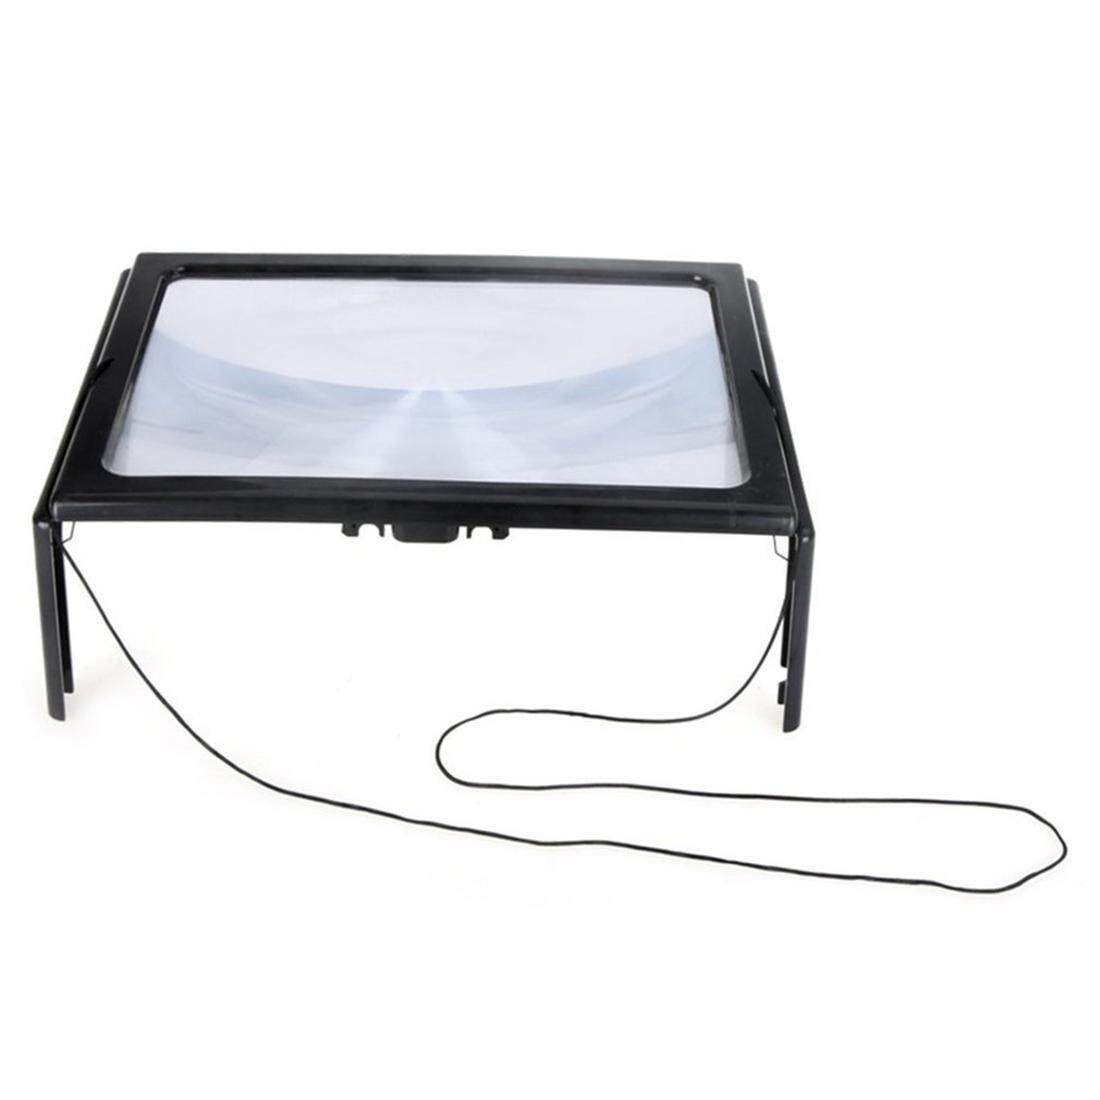 Full Page PVC Reading Magnifier Foldable Magnifying Loupe with 4 LED Lights